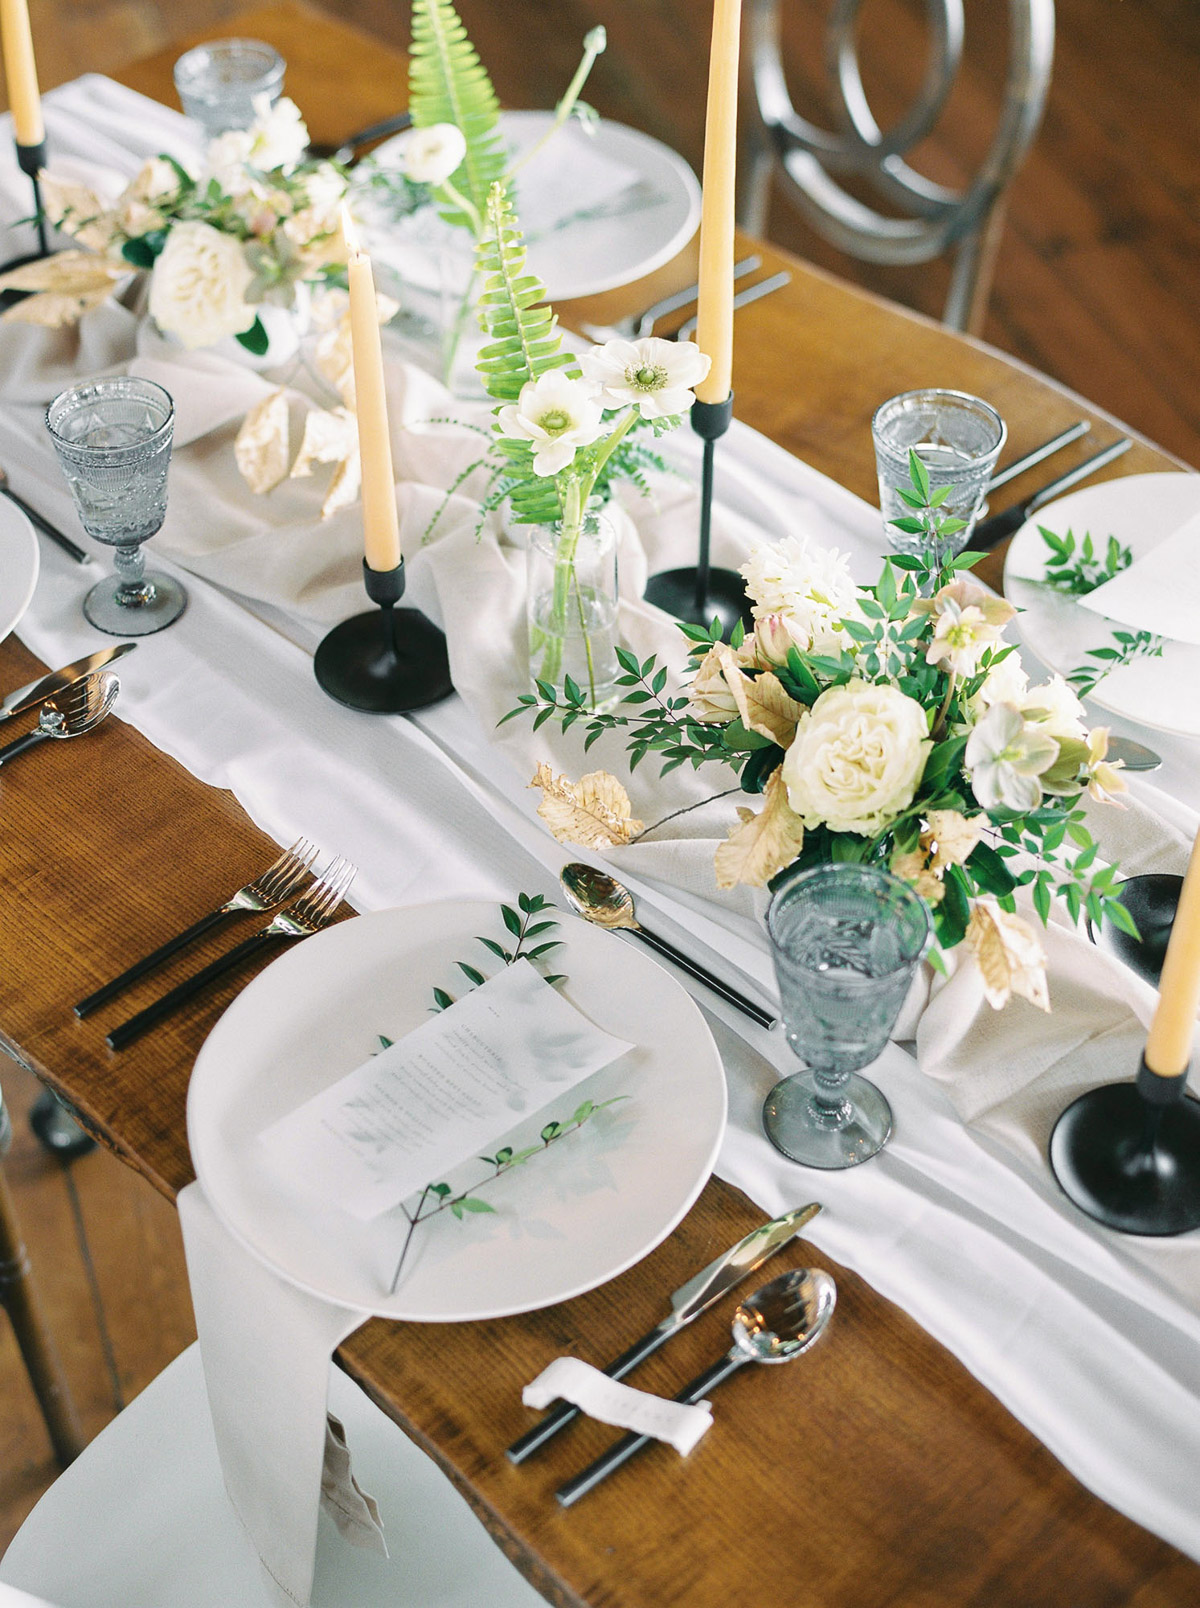 will-reid-photo-vineyard-bride-swish-list-kurtz-orchards-market-niagara-on-the-lake-wedding-editorial-13.jpg